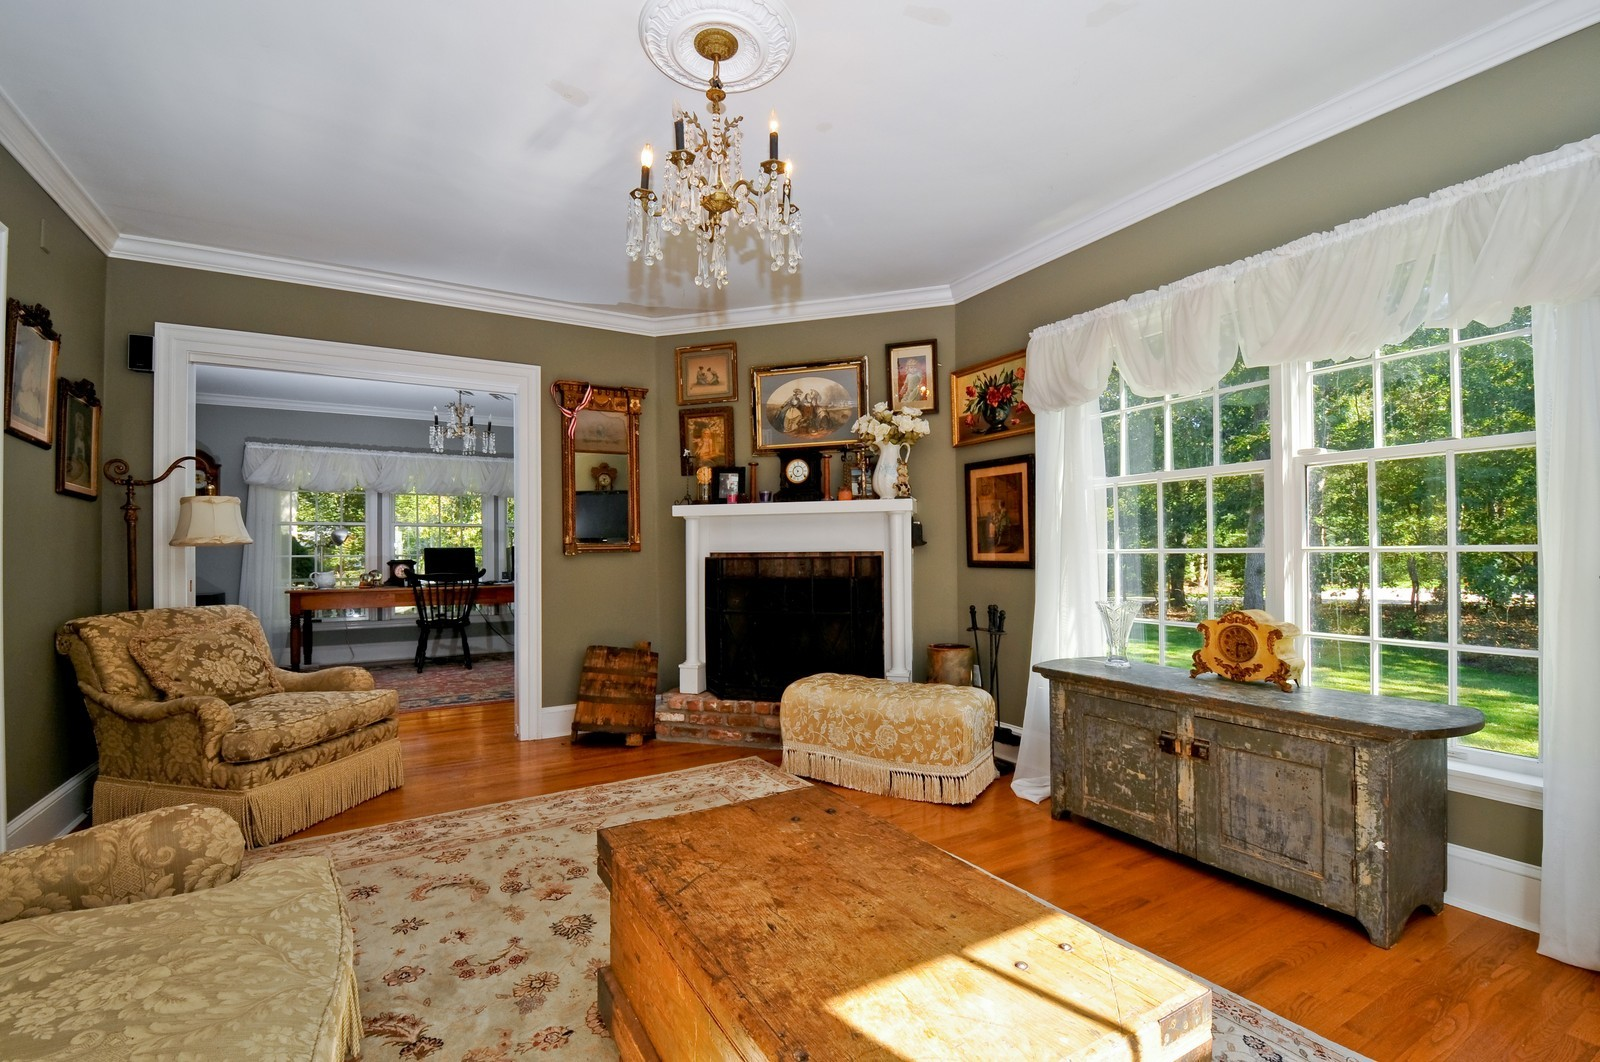 18 Briarcroft Drive East Hampton Ny 11937 Virtual Tour The Corcoran Group Li East Hampton